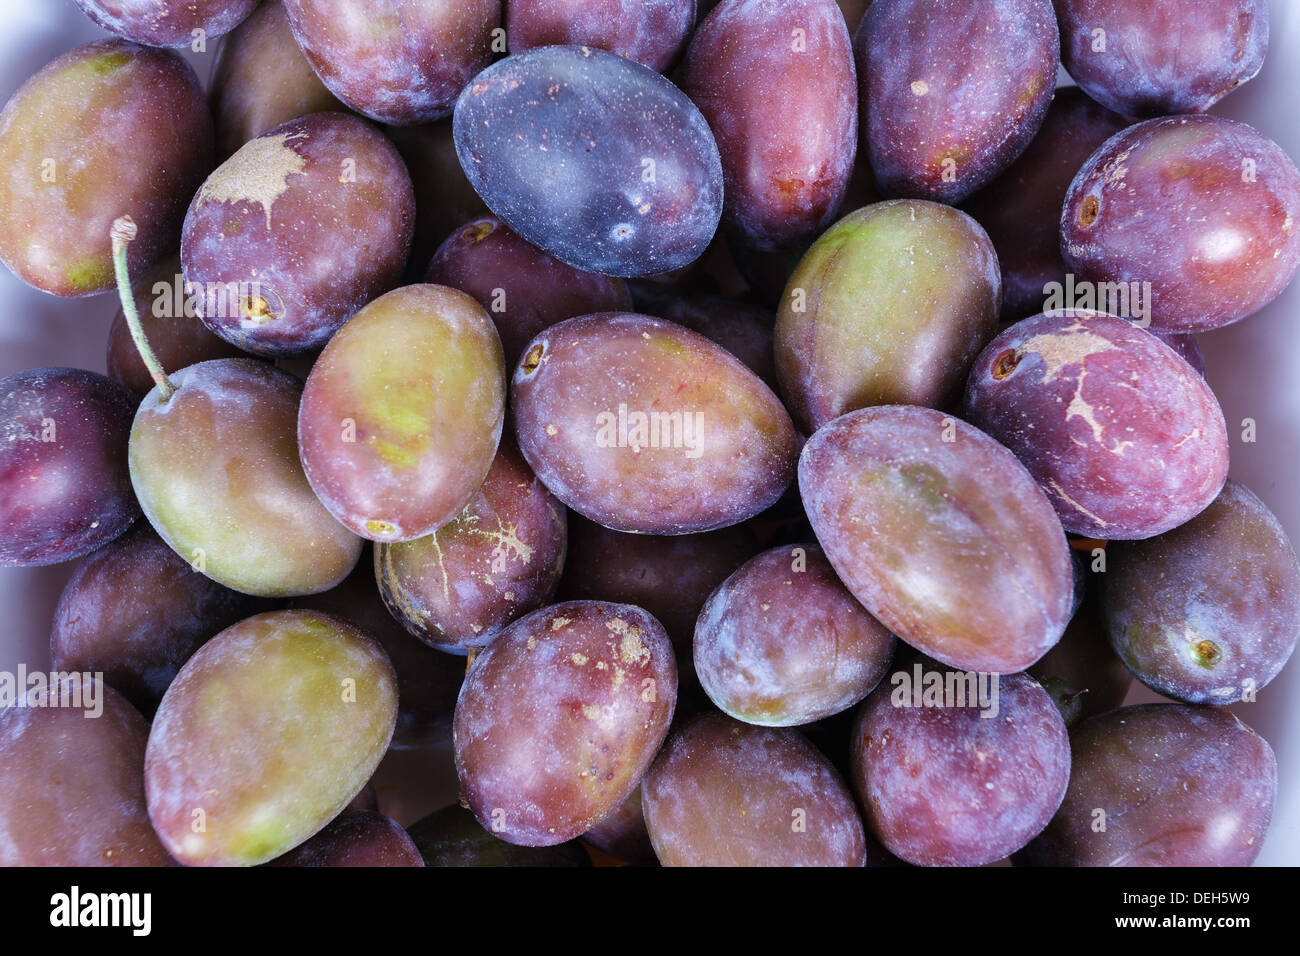 Acid purple and green Plums (Blackthorns) Background, Texture, detail - Stock Image